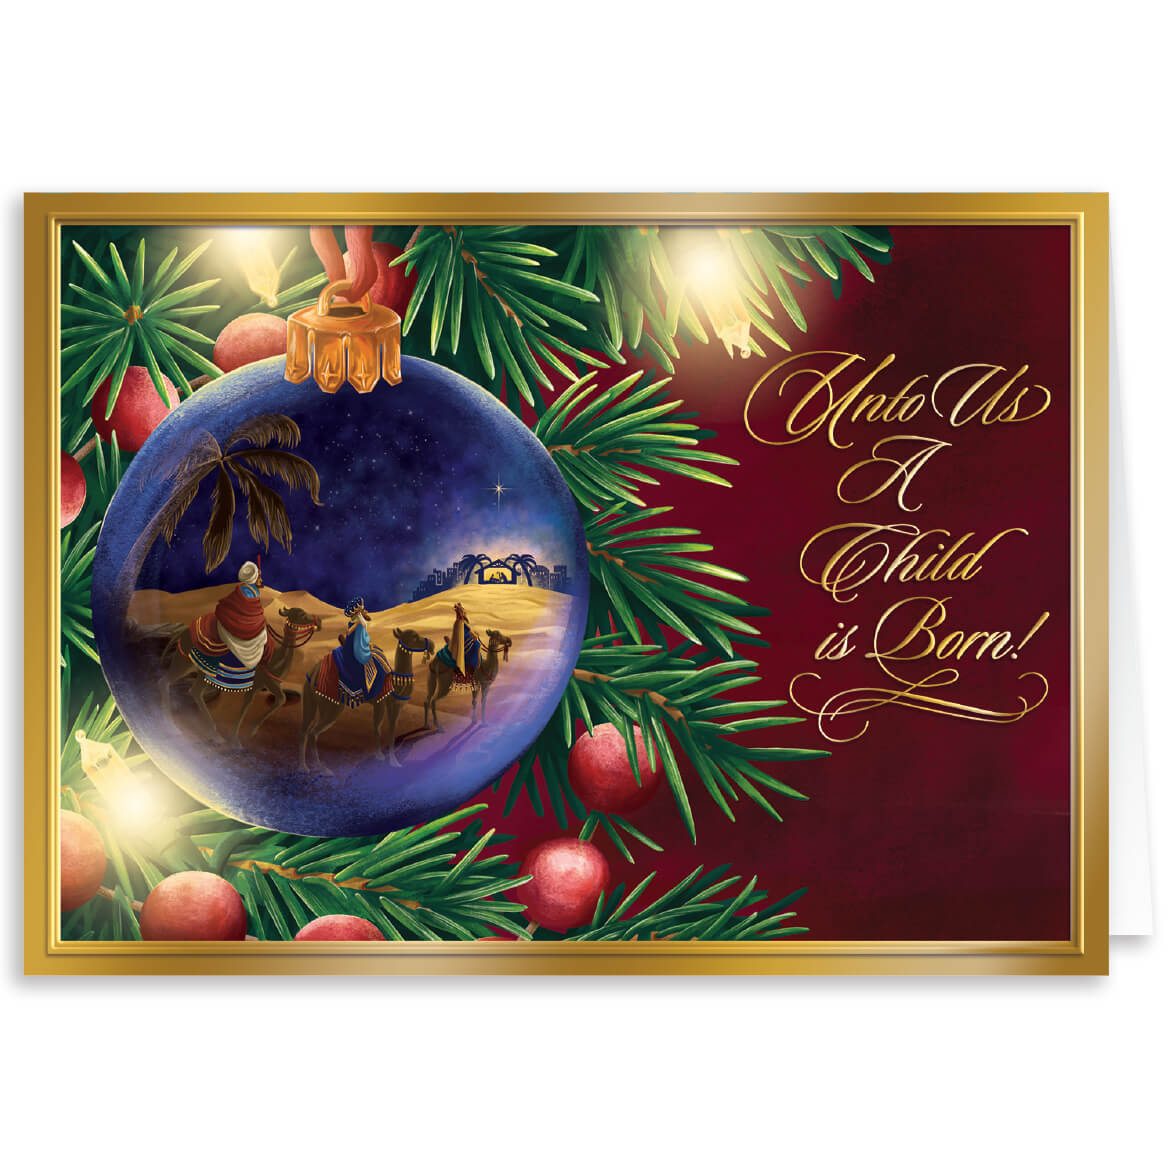 Personalized Nativity Christmas Card Set of 20 - Miles Kimball